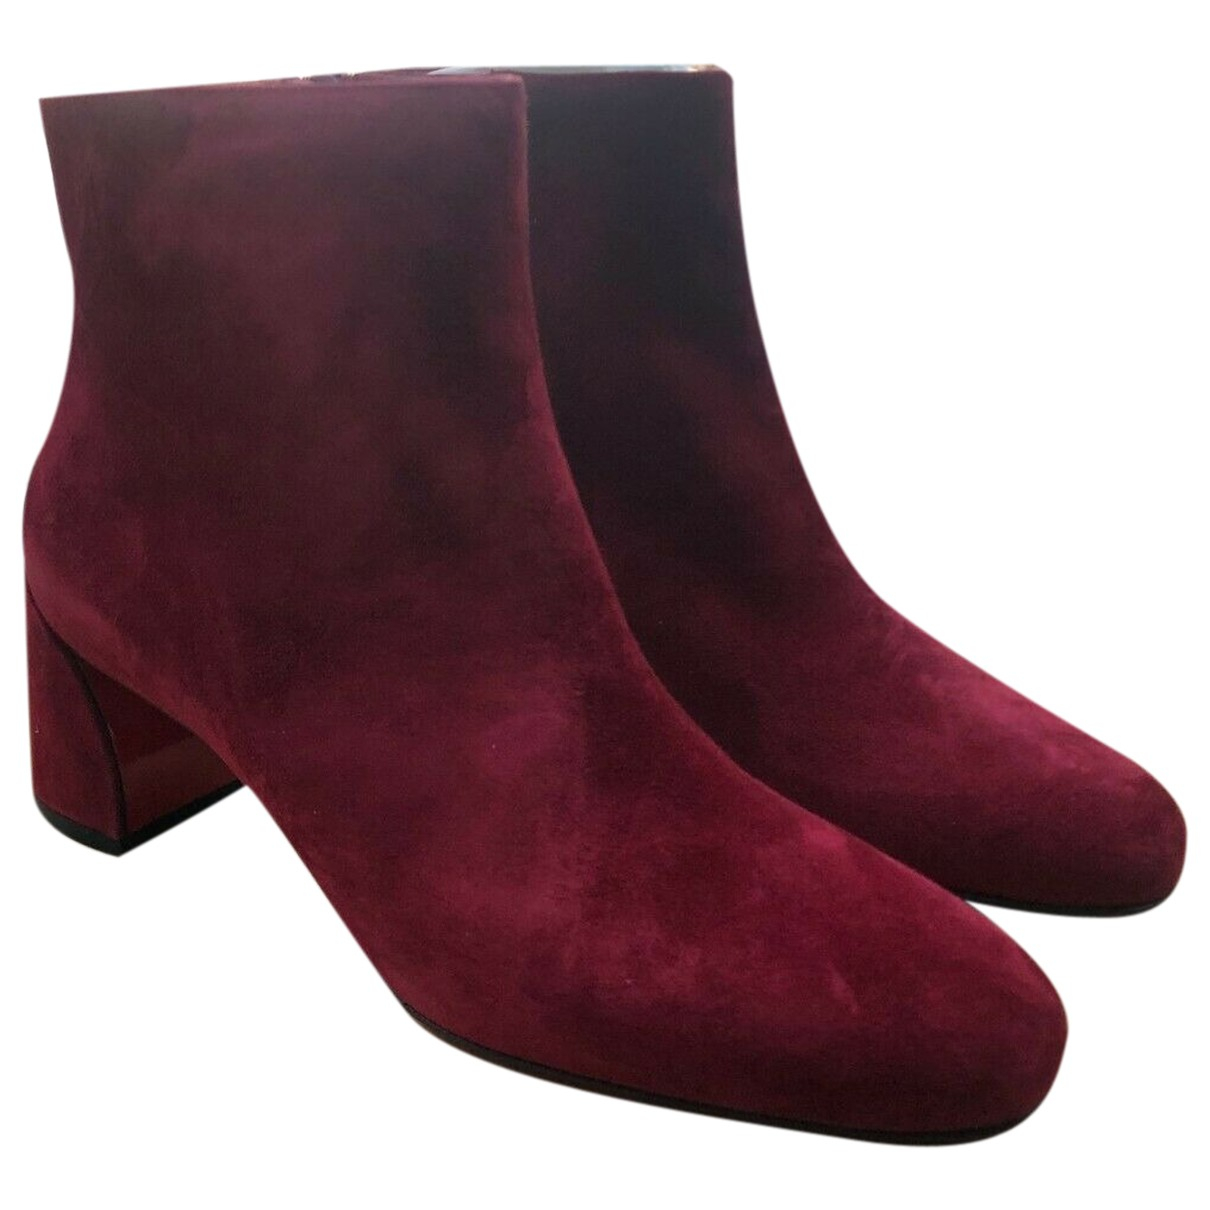 Christian Louboutin N Red Suede Ankle boots for Women 41.5 EU